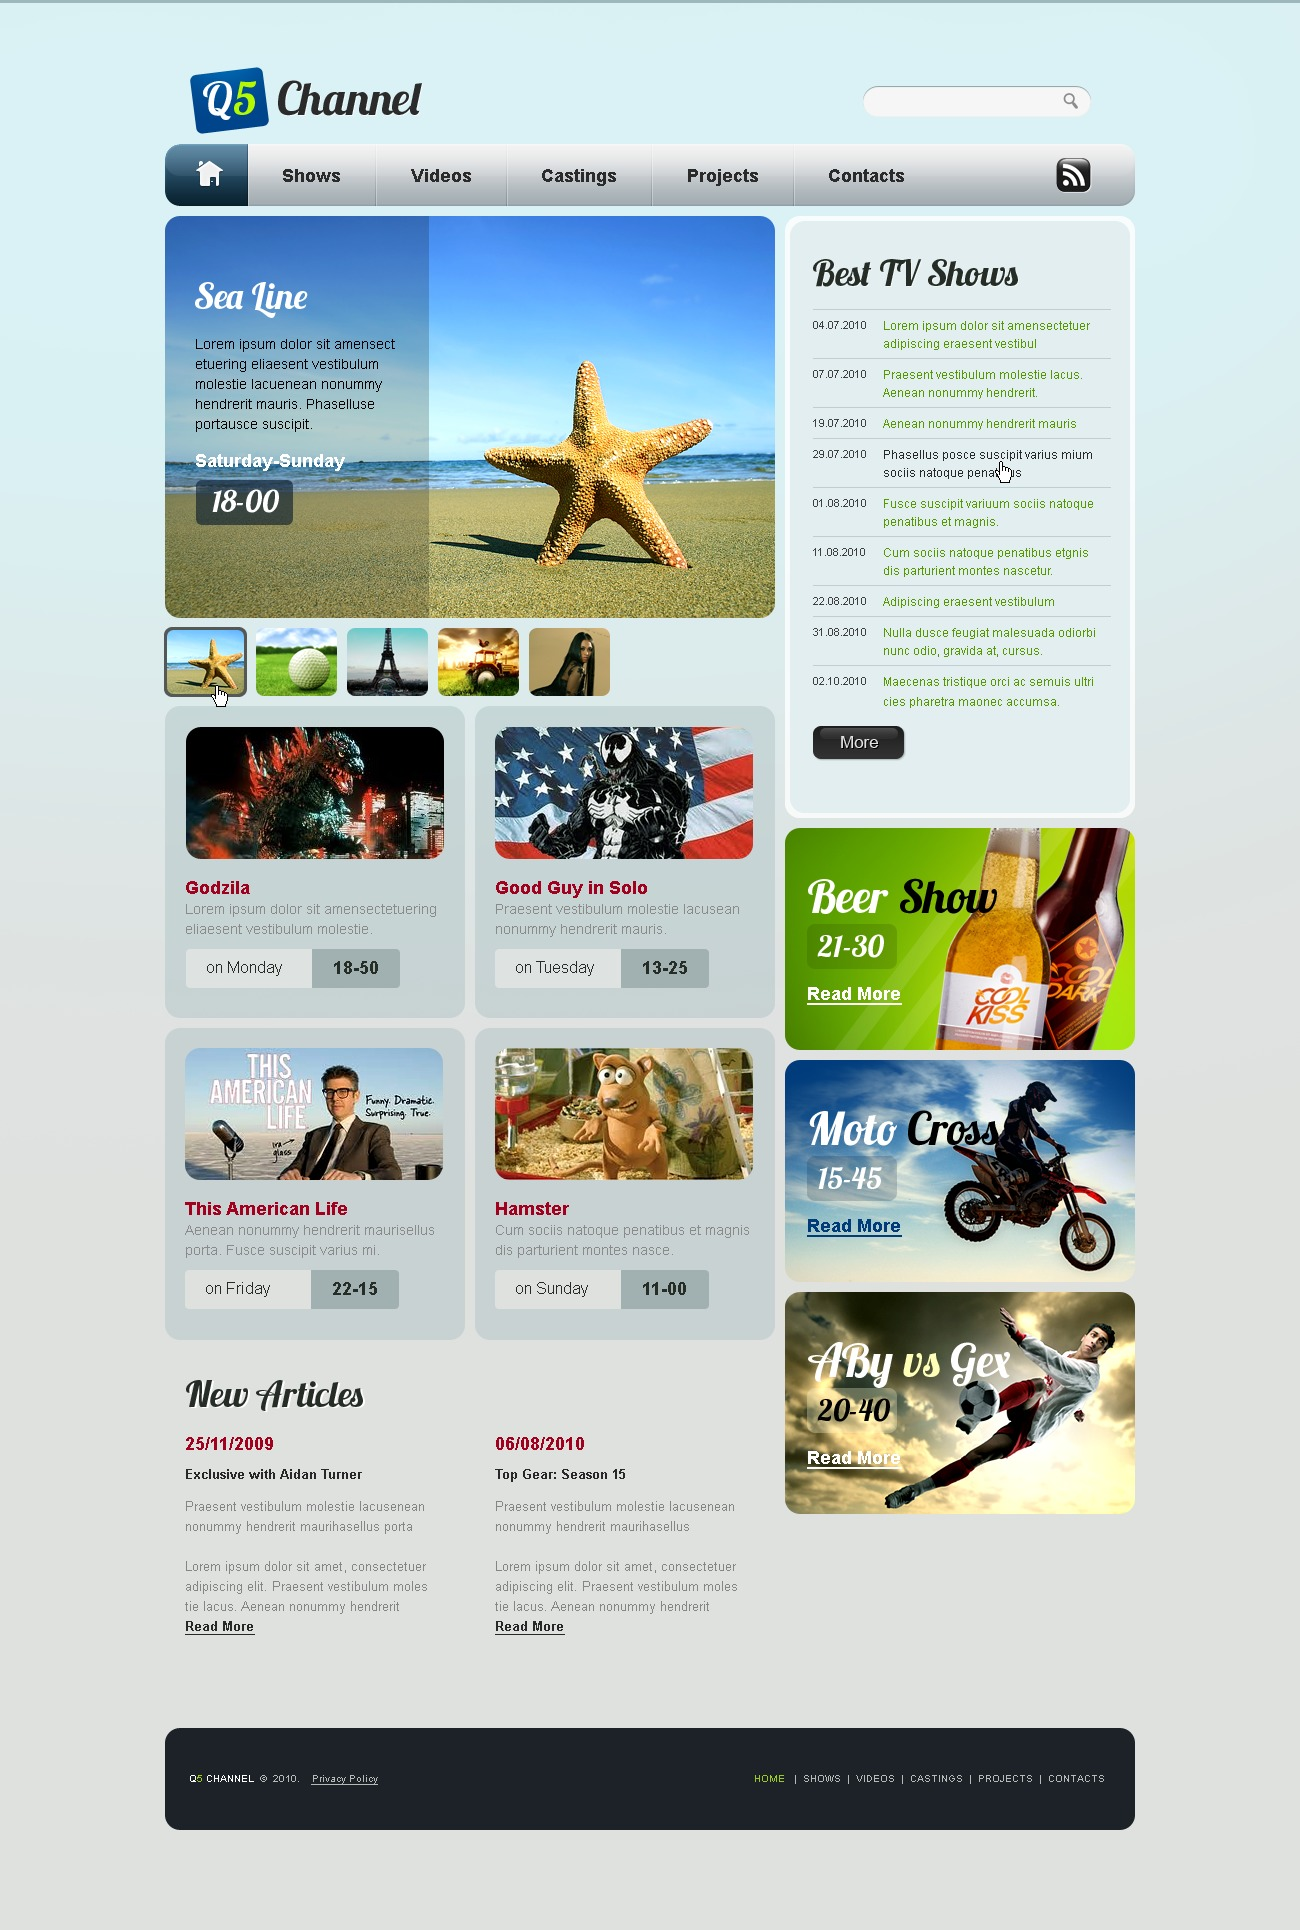 The Q5 Chanel PSD Design 54409, one of the best PSD templates of its kind (media, wide, jquery), also known as q5 chanel PSD template, shows PSD template, videos PSD template, castings PSD template, projects PSD template, services PSD template, travel PSD template, movies PSD template, reviews and related with q5 chanel, shows, videos, castings, projects, services, travel, movies, reviews, etc.